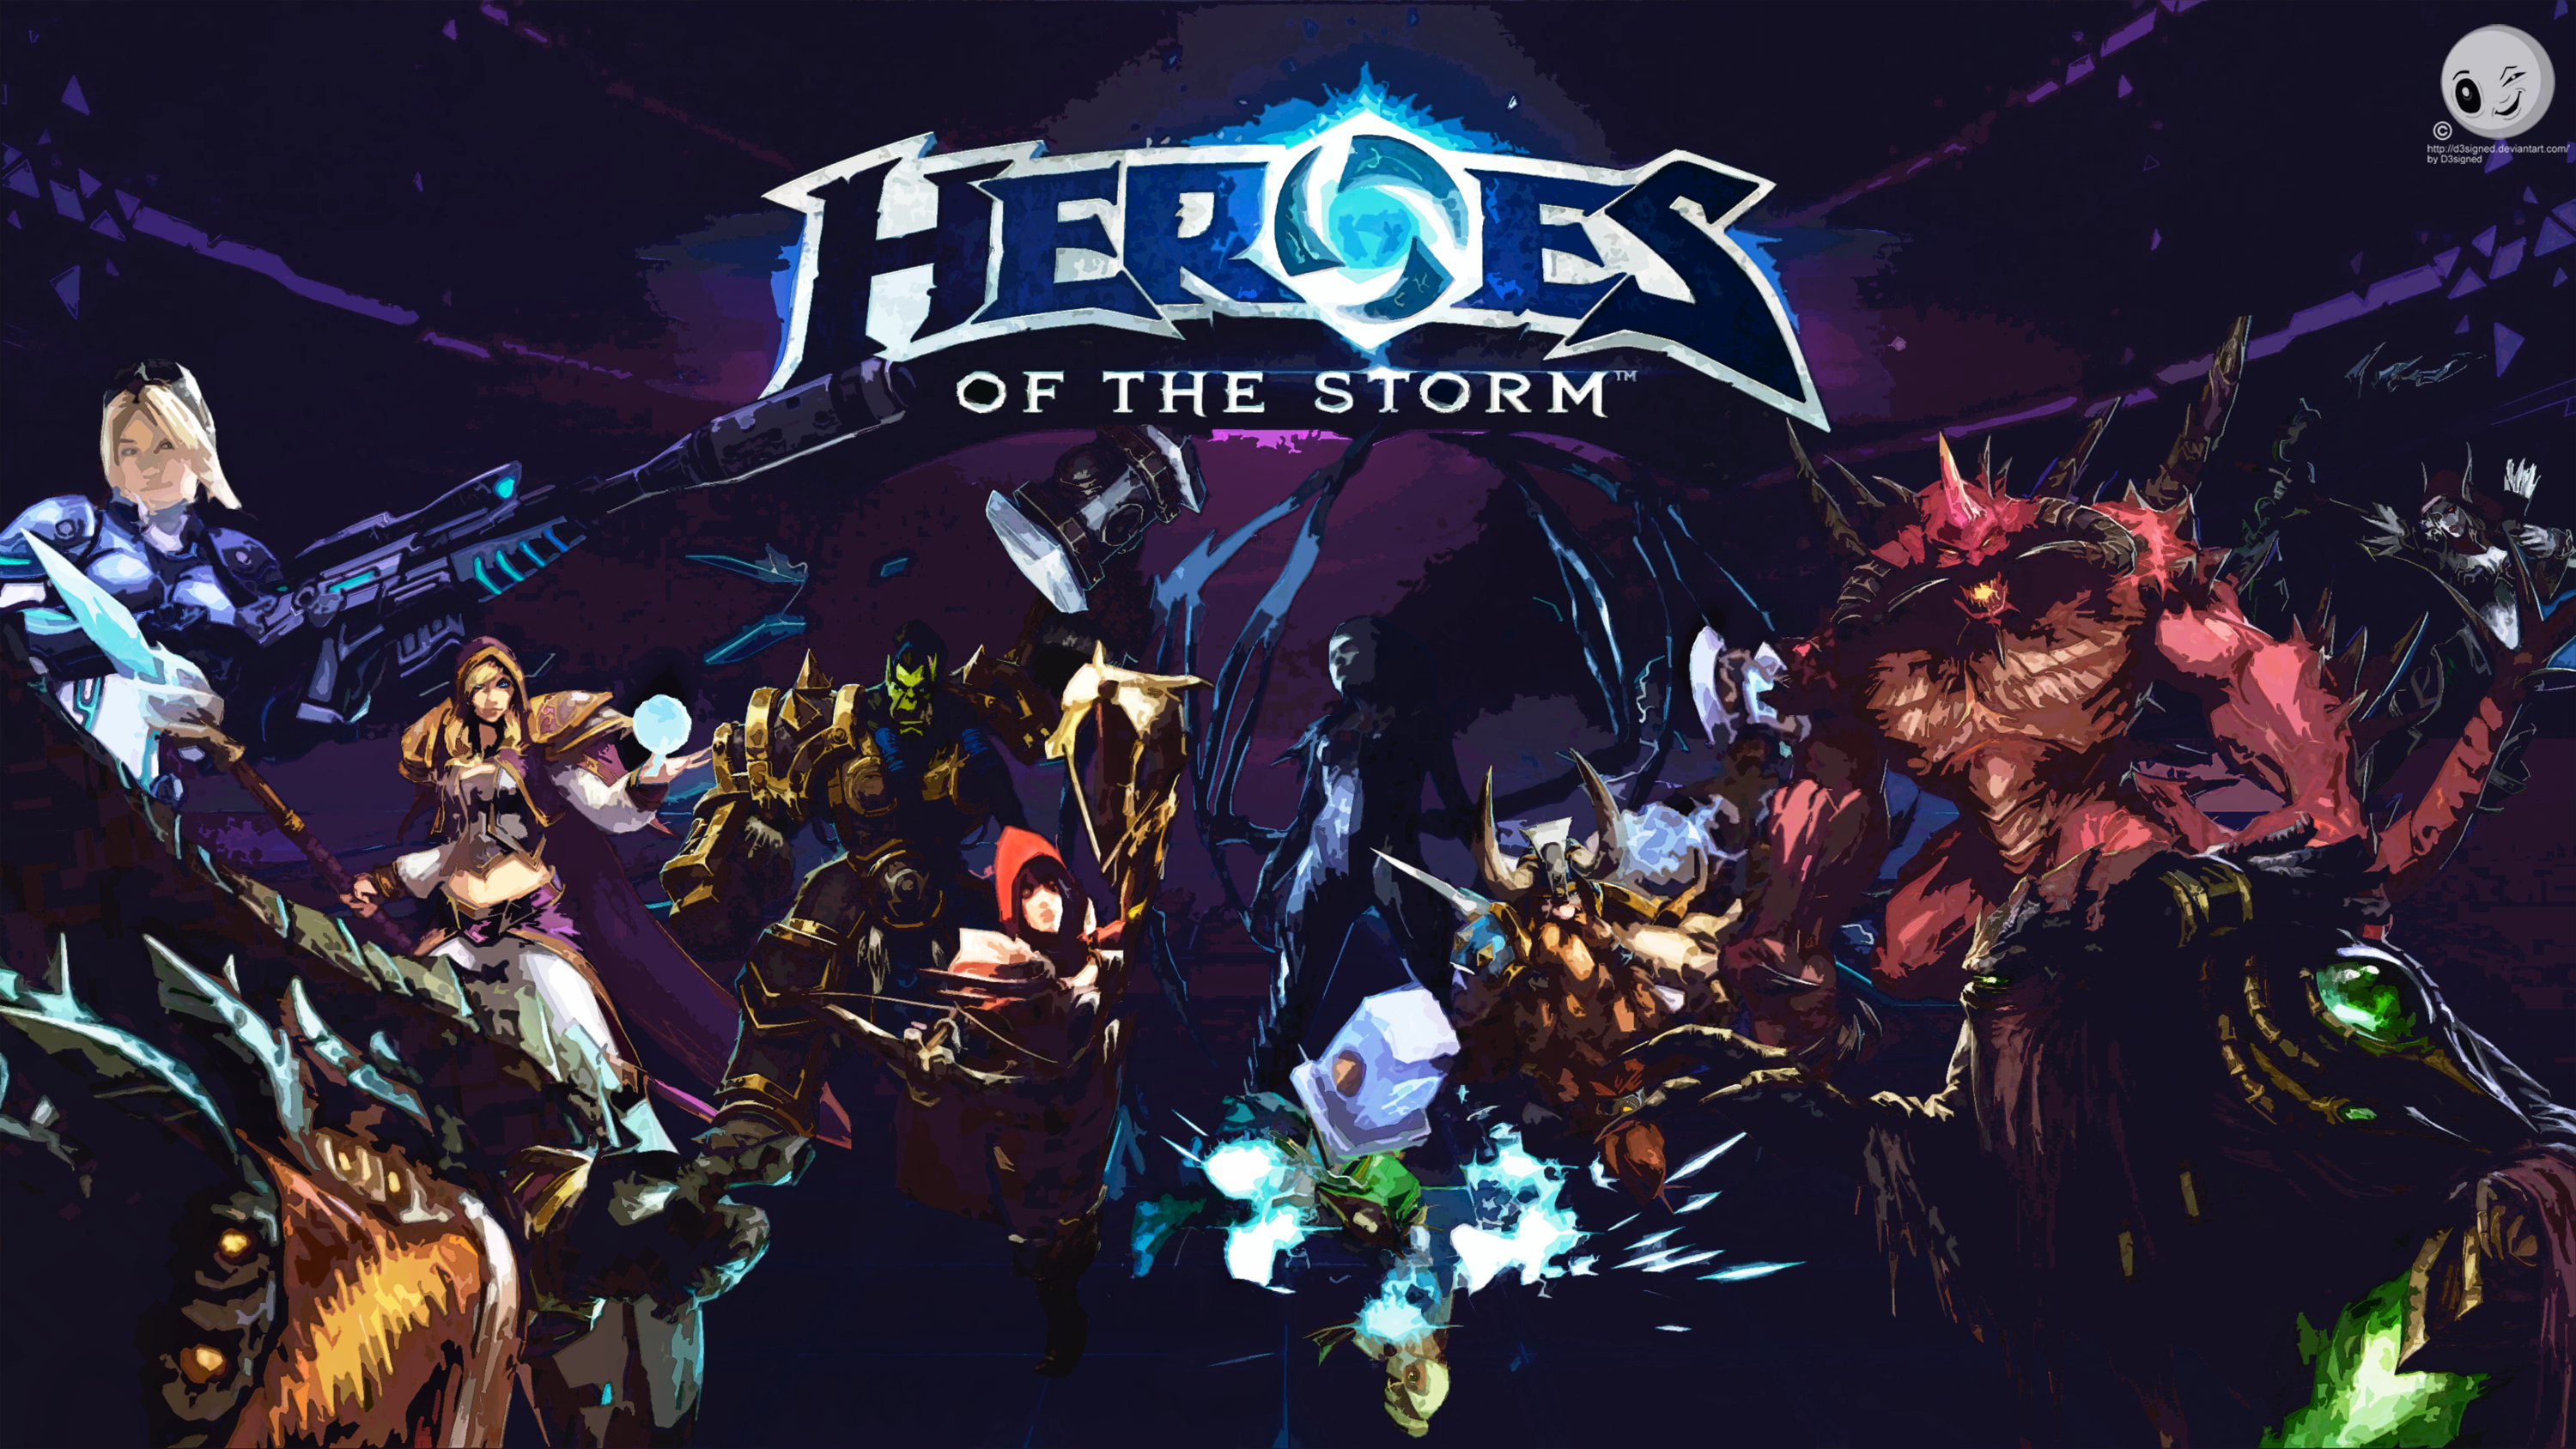 Heroes Of The Storm Wallpaper FanArt By D3signed